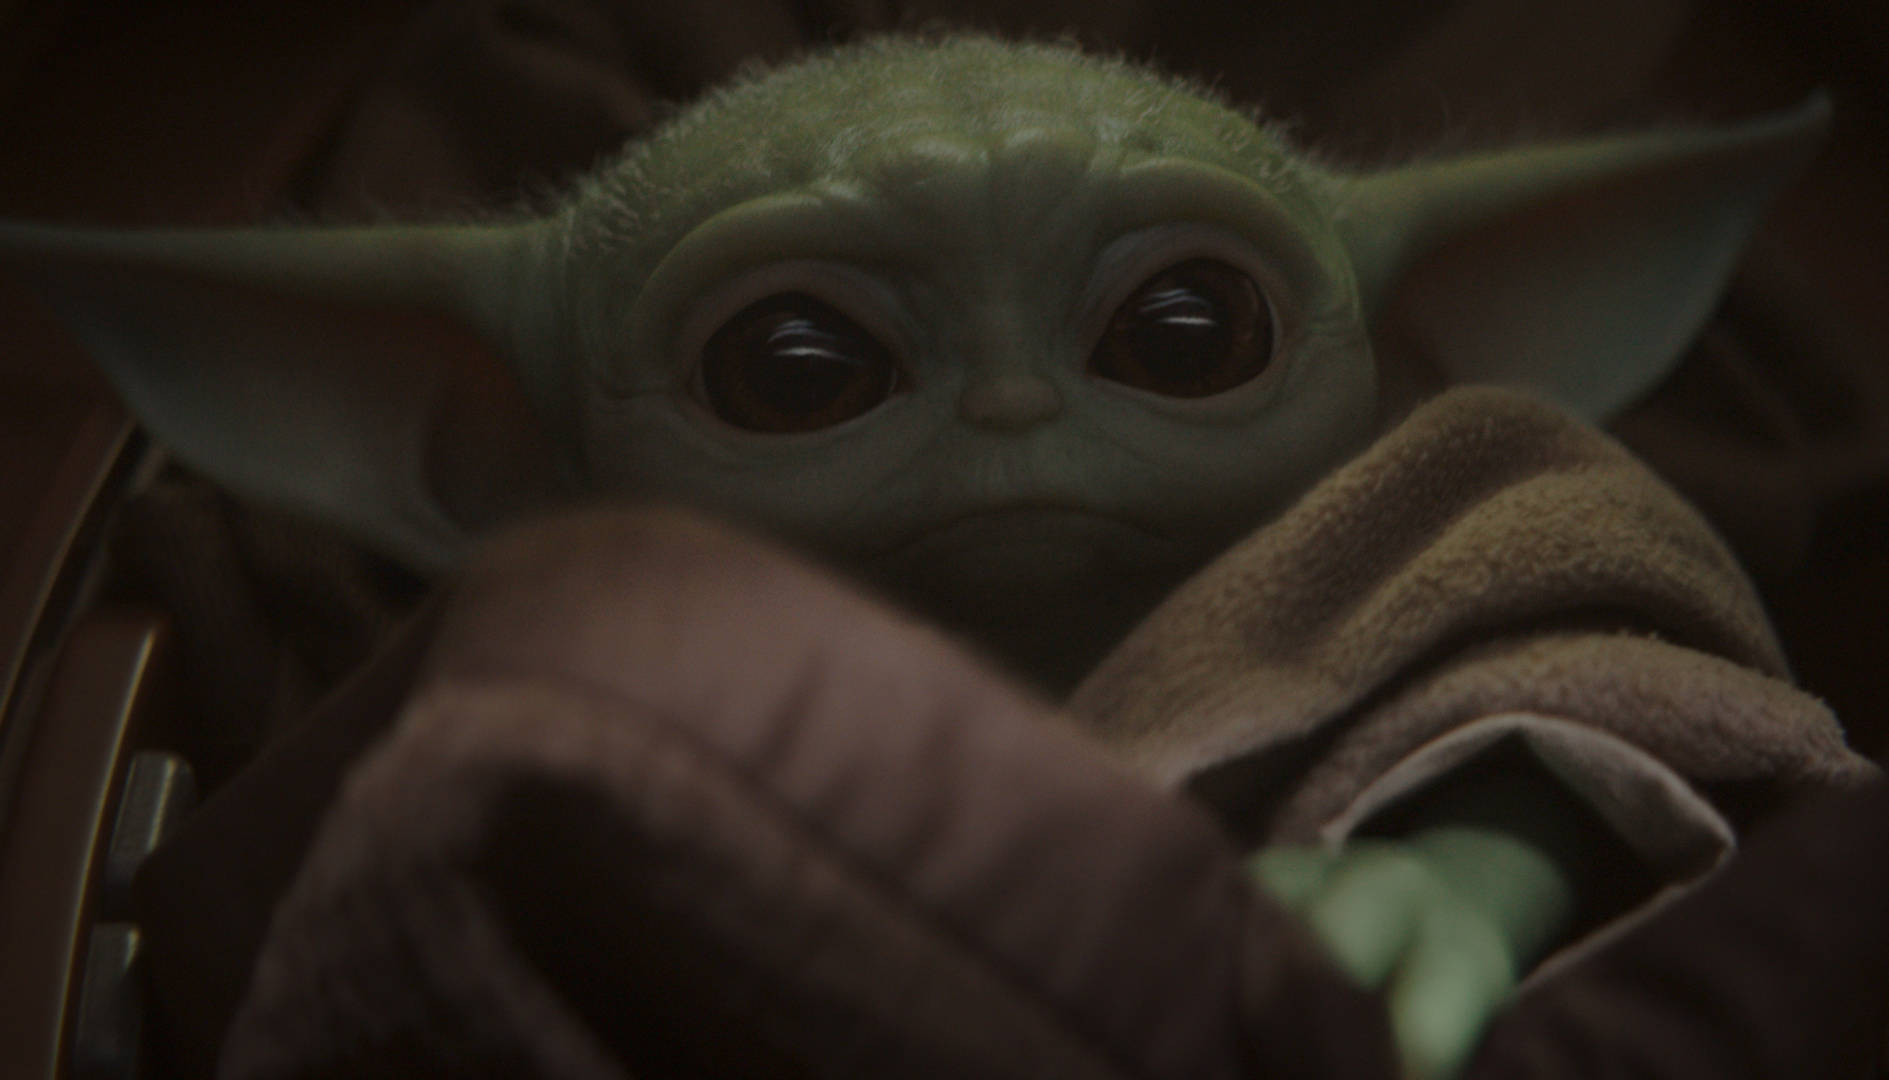 It's Official, We Can Call 'Baby Yoda' Baby Yoda